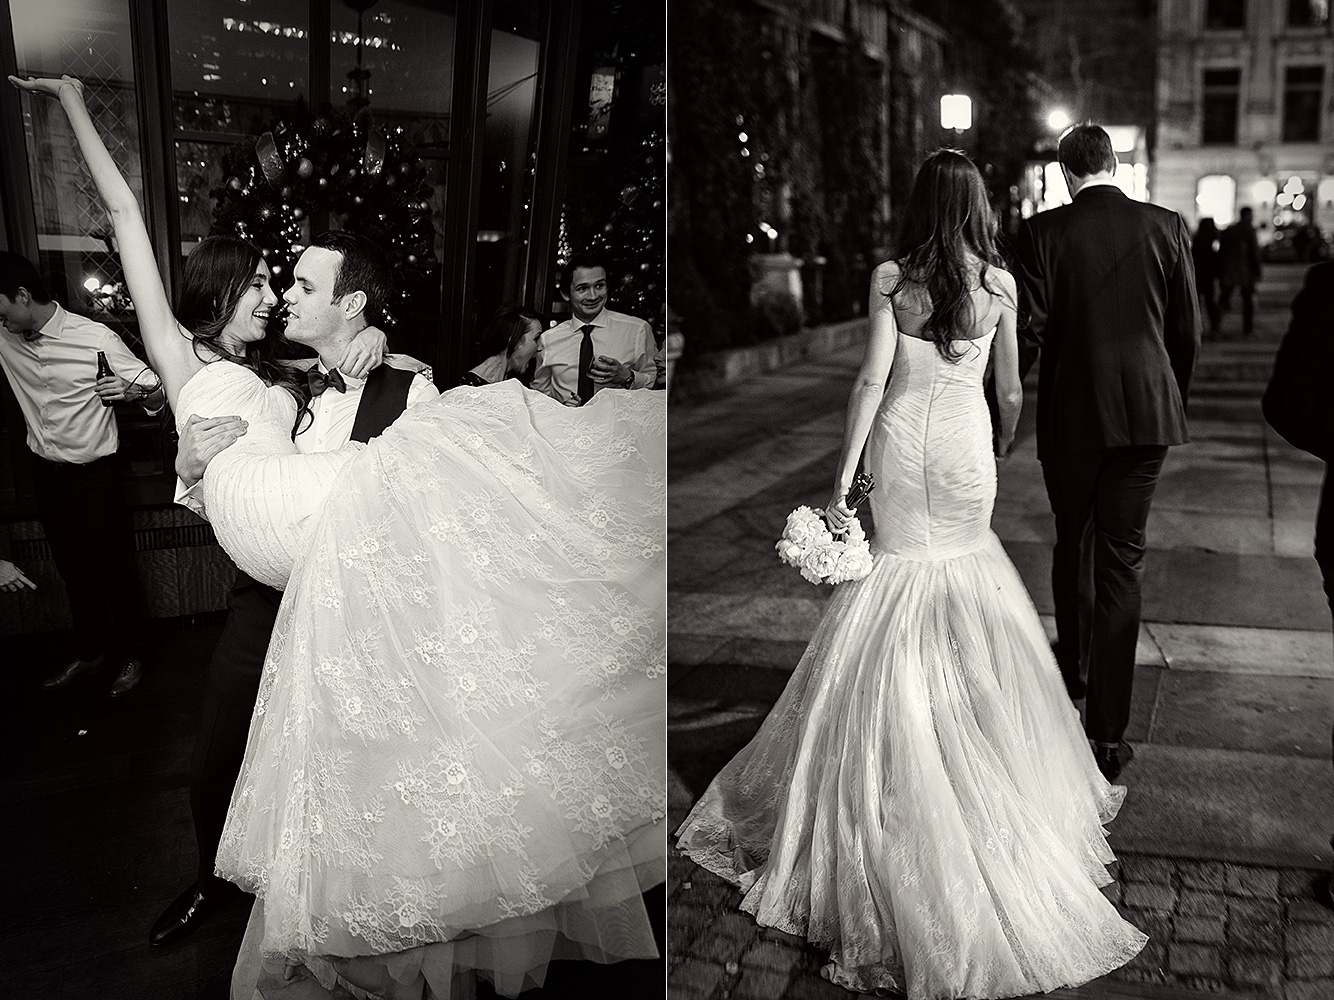 NYC_Wedding_Photographer_DaAd_Wed_Blog_42.jpg